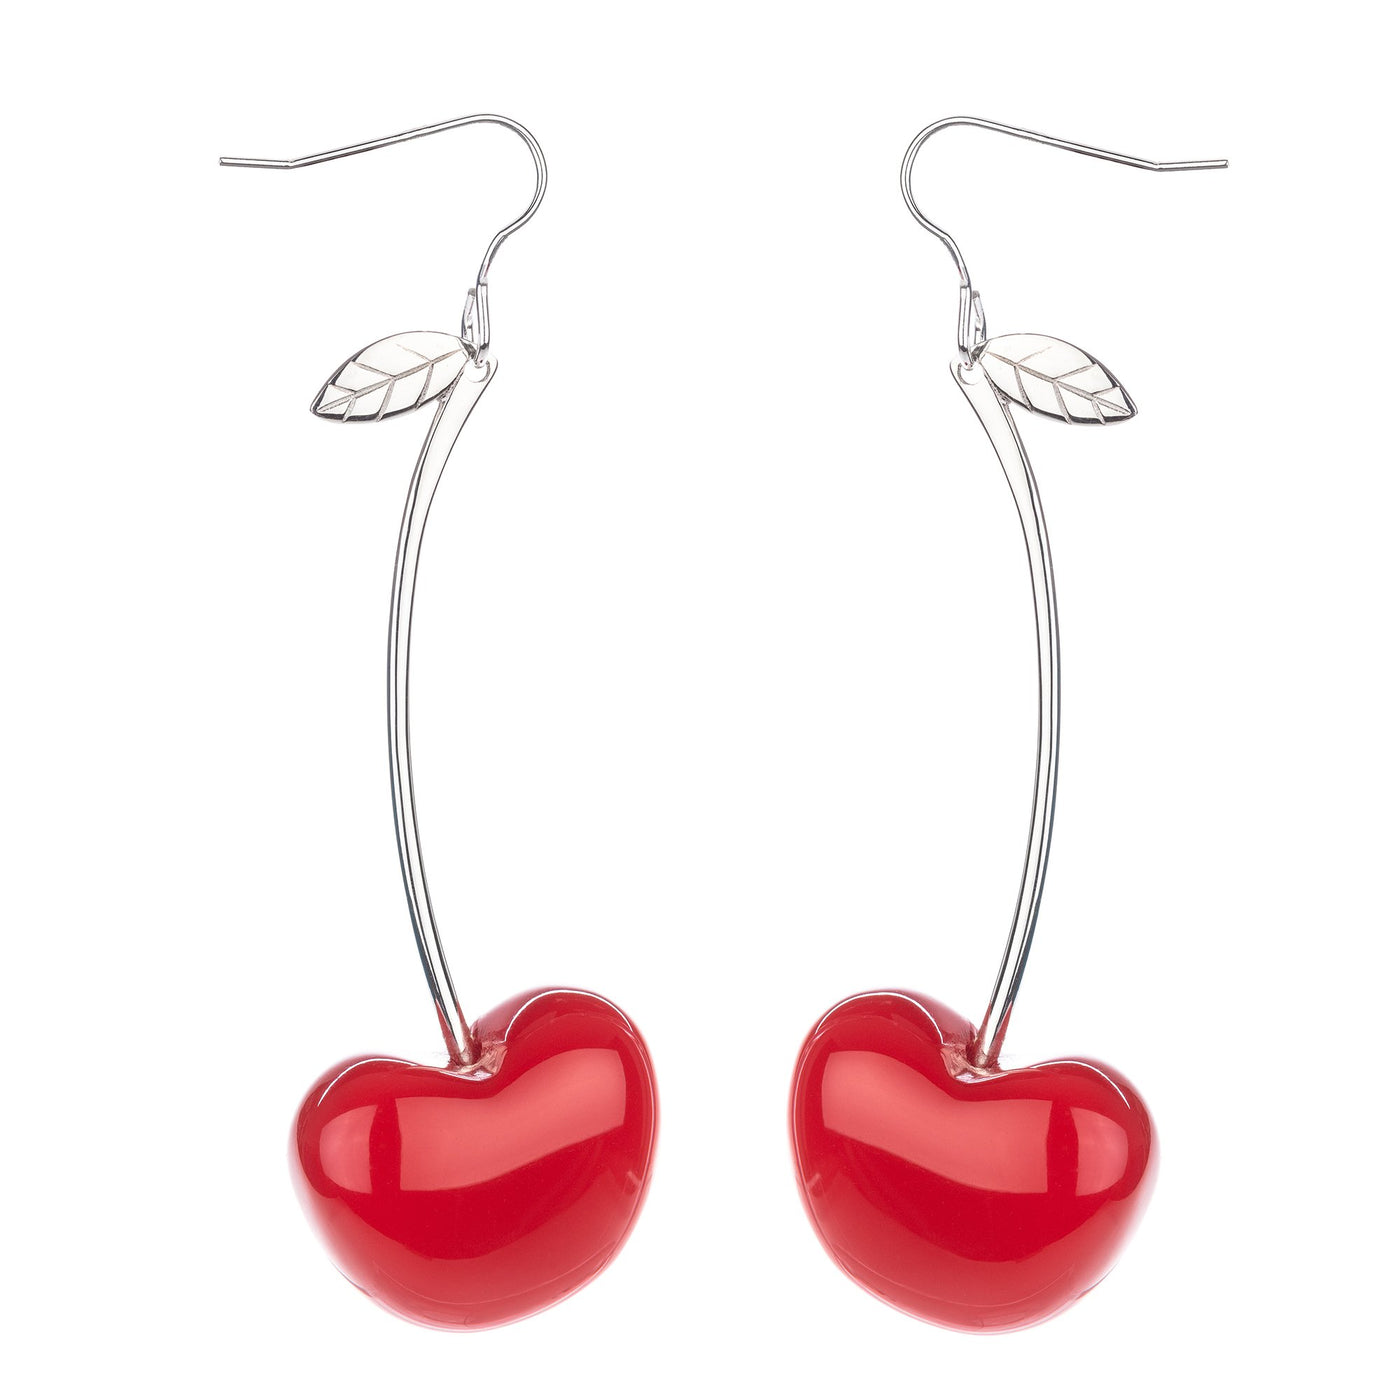 Tina Lilienthal Cherry Earrings